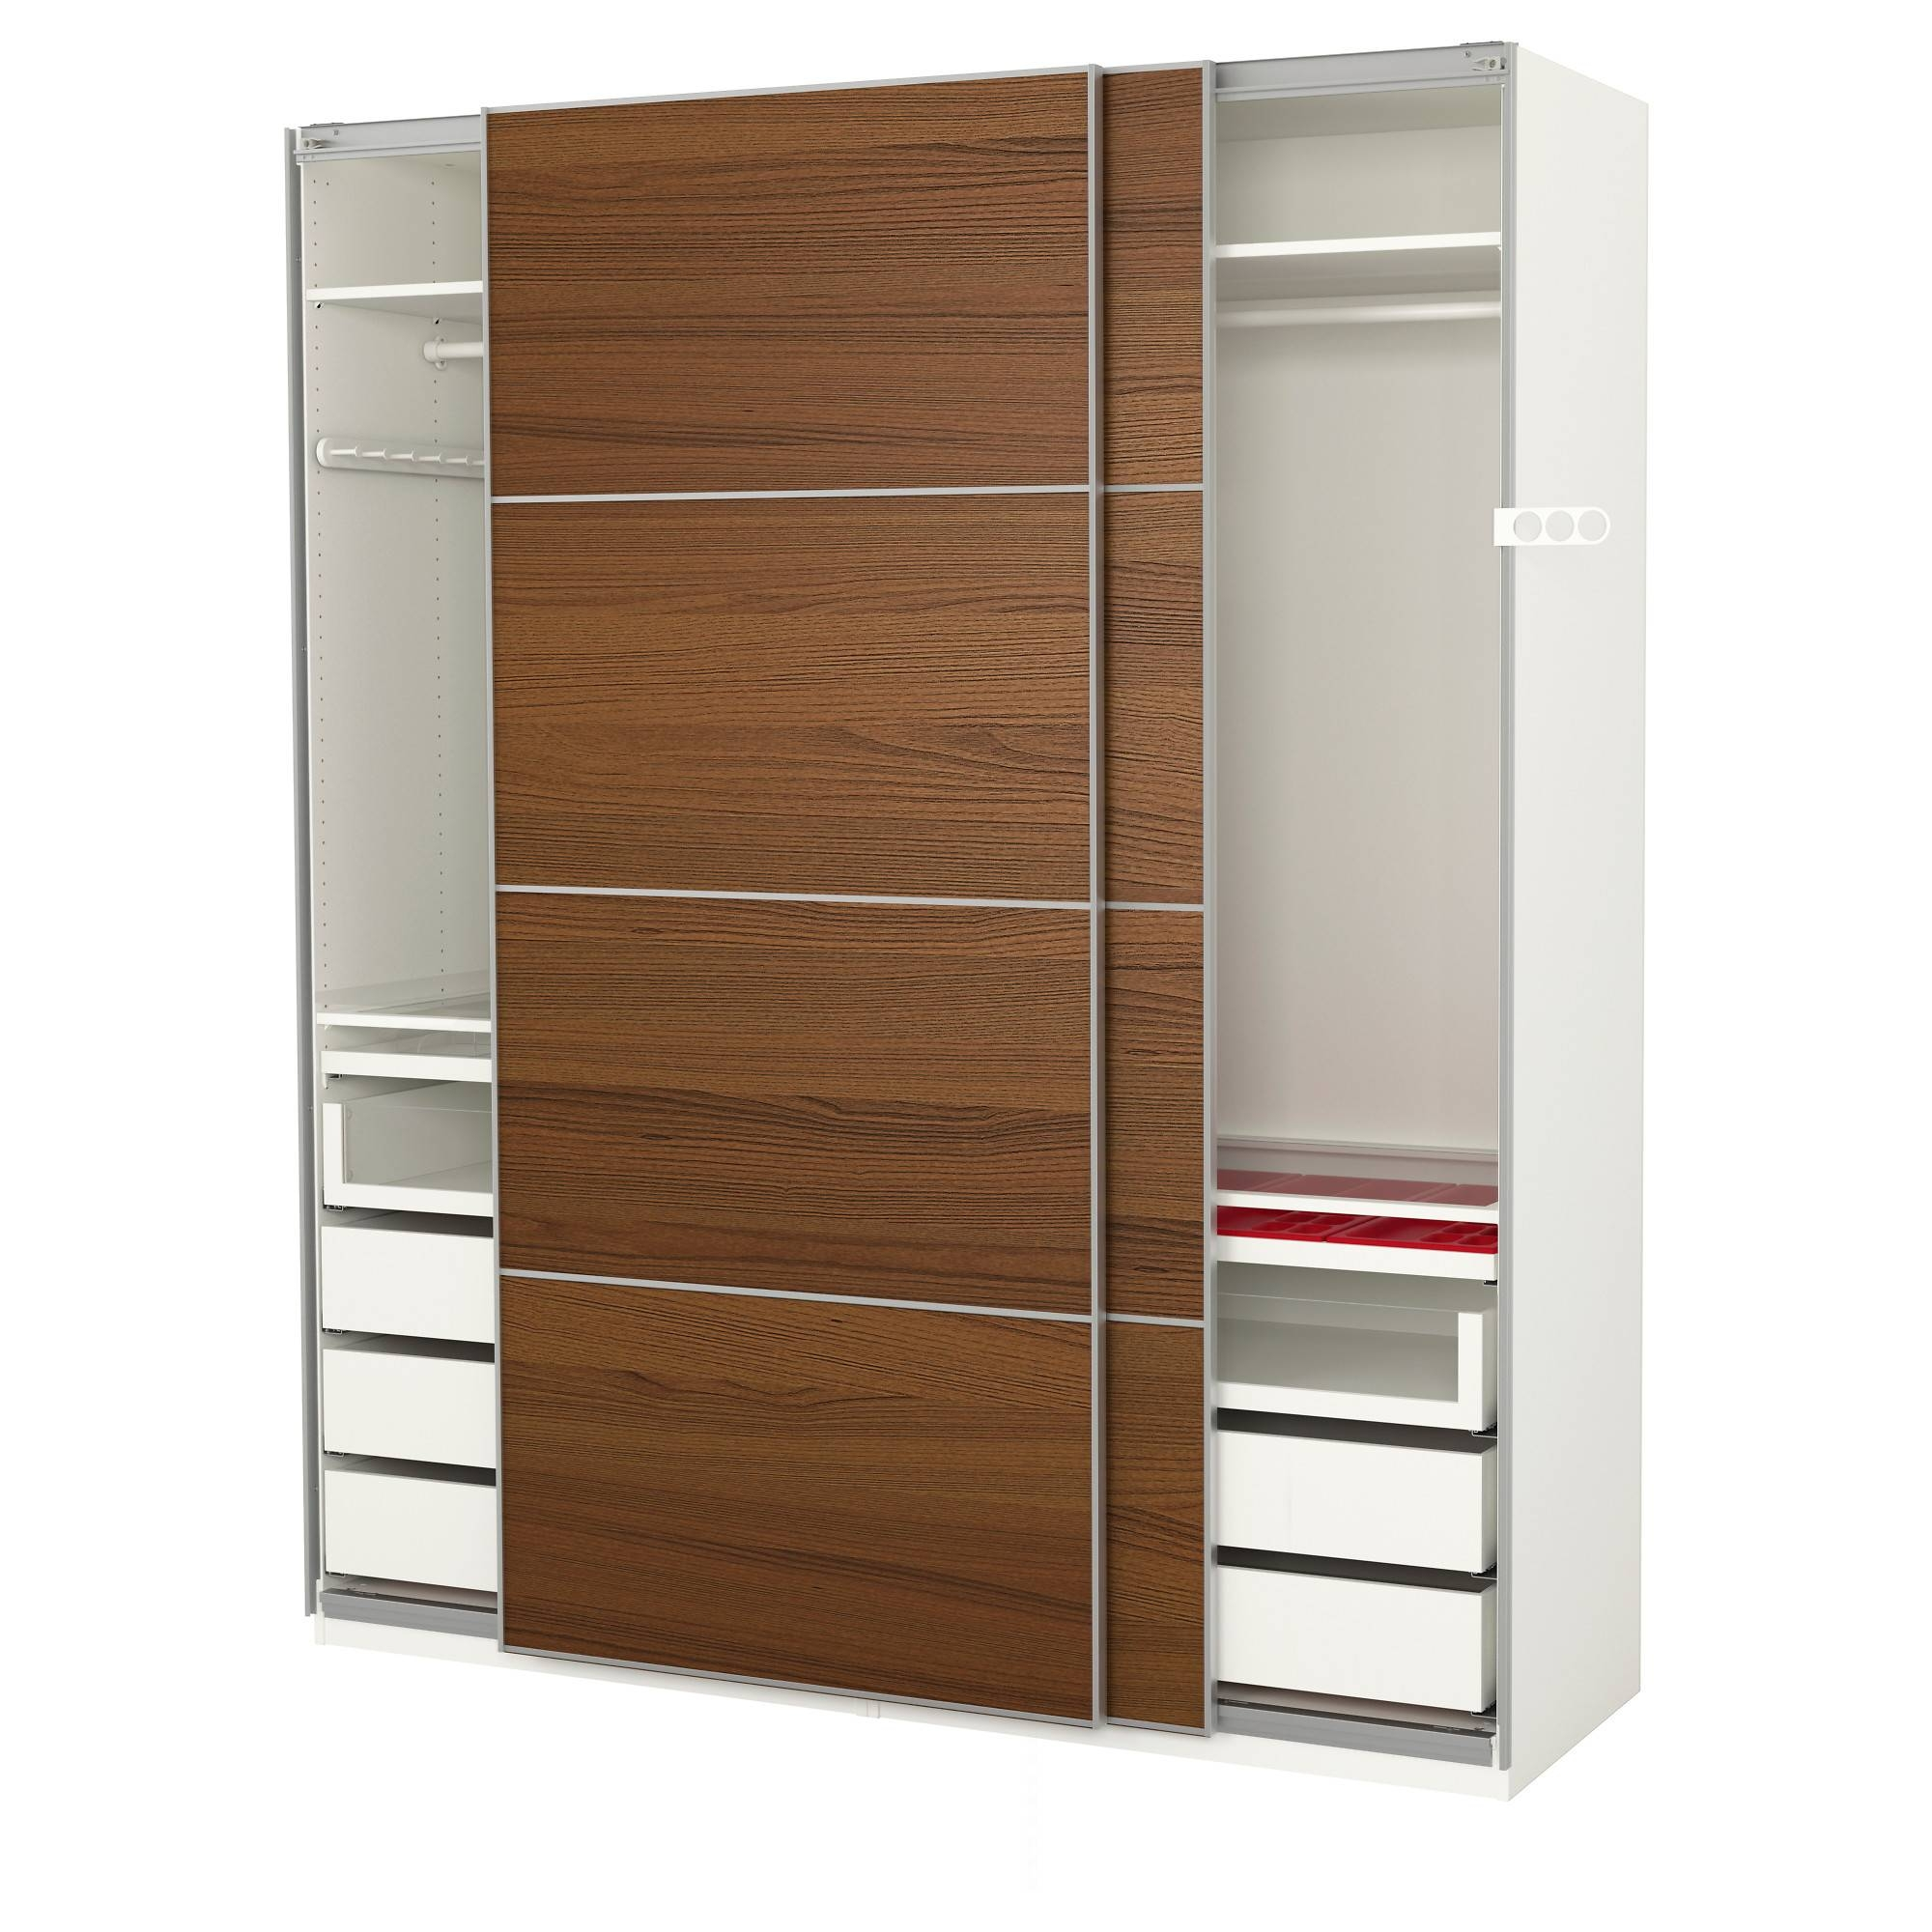 Wardrobes - Pax System - Ikea pertaining to Wardrobes and Drawers Combo (Image 14 of 15)